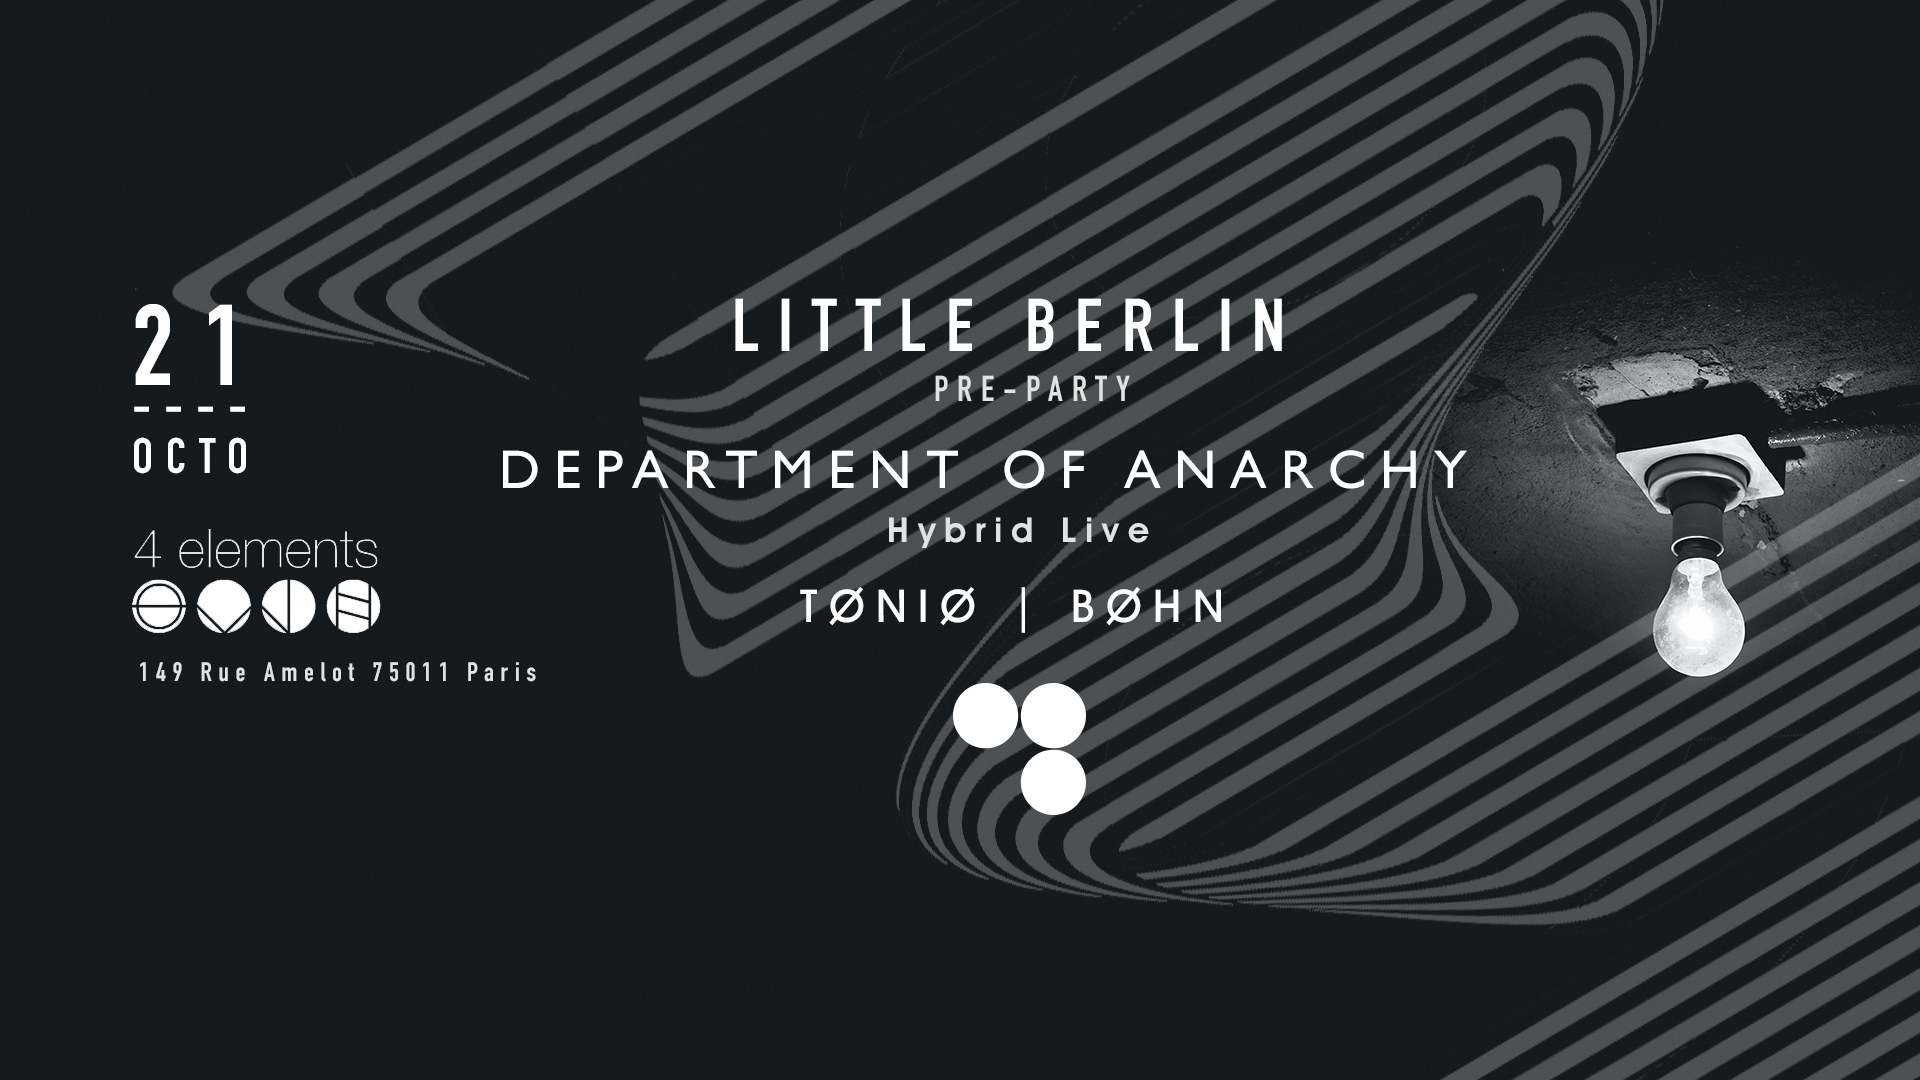 Little Berlin In Paris w / Department of Anarchy